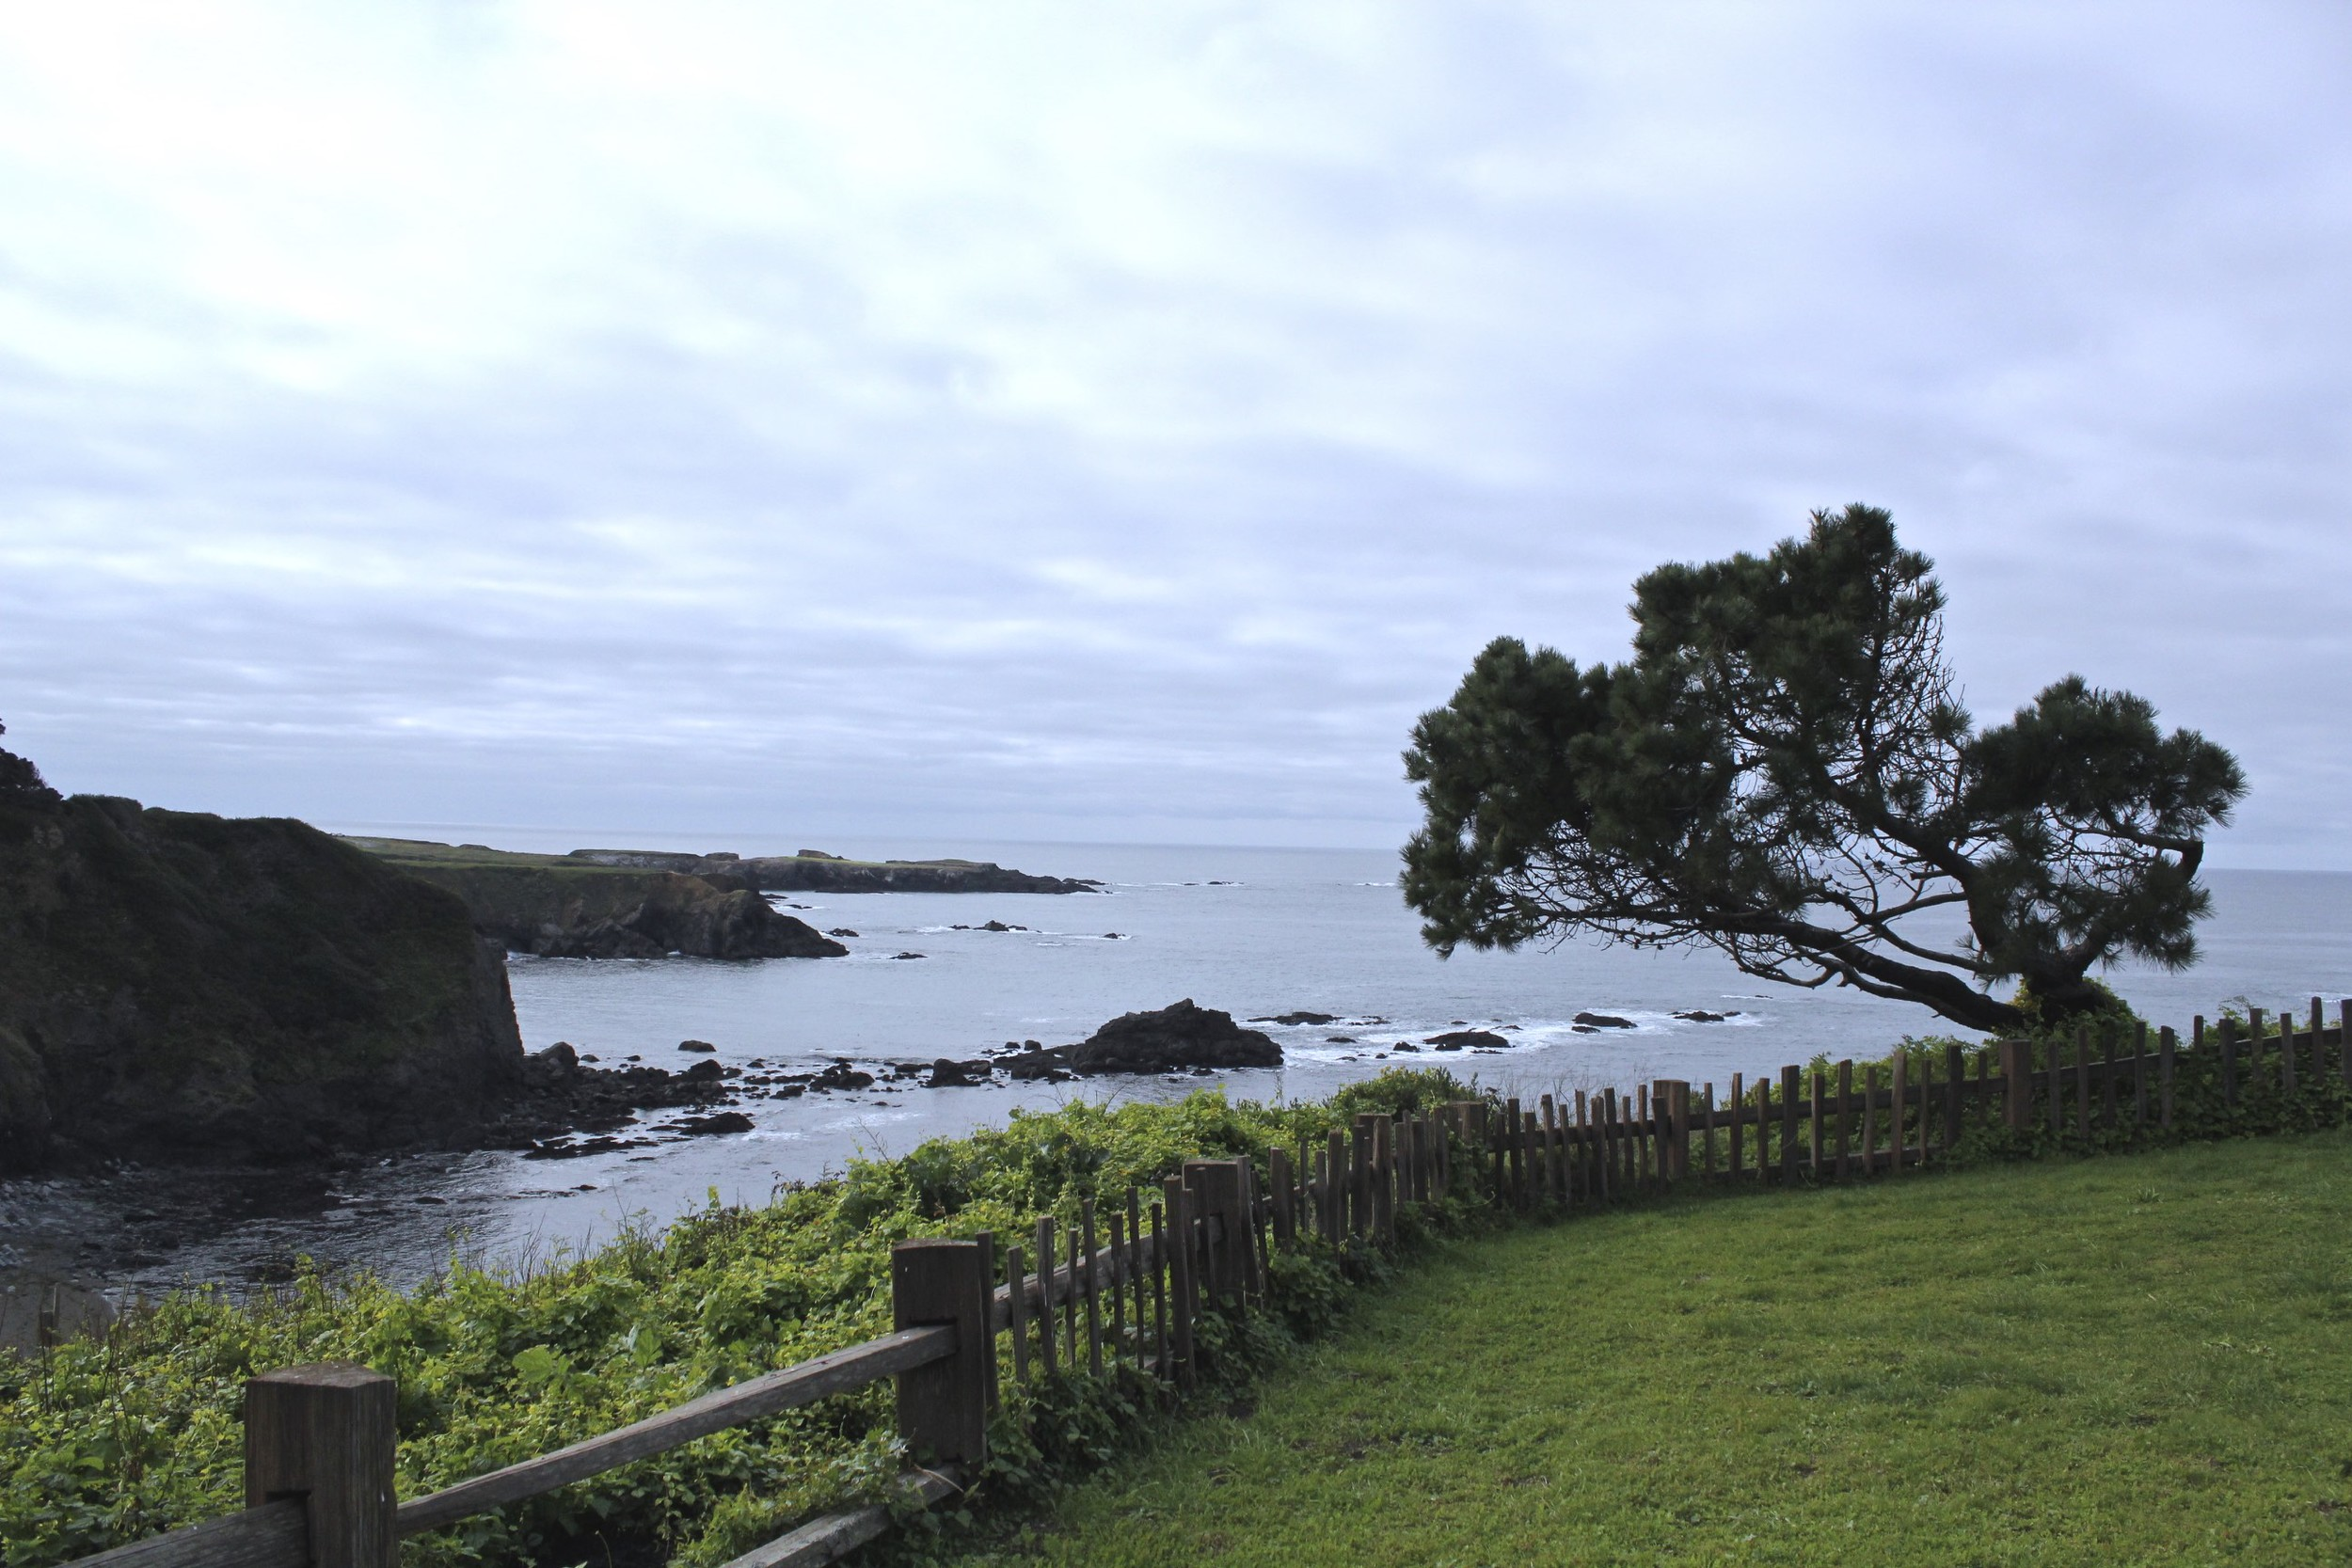 Mendocino overlook